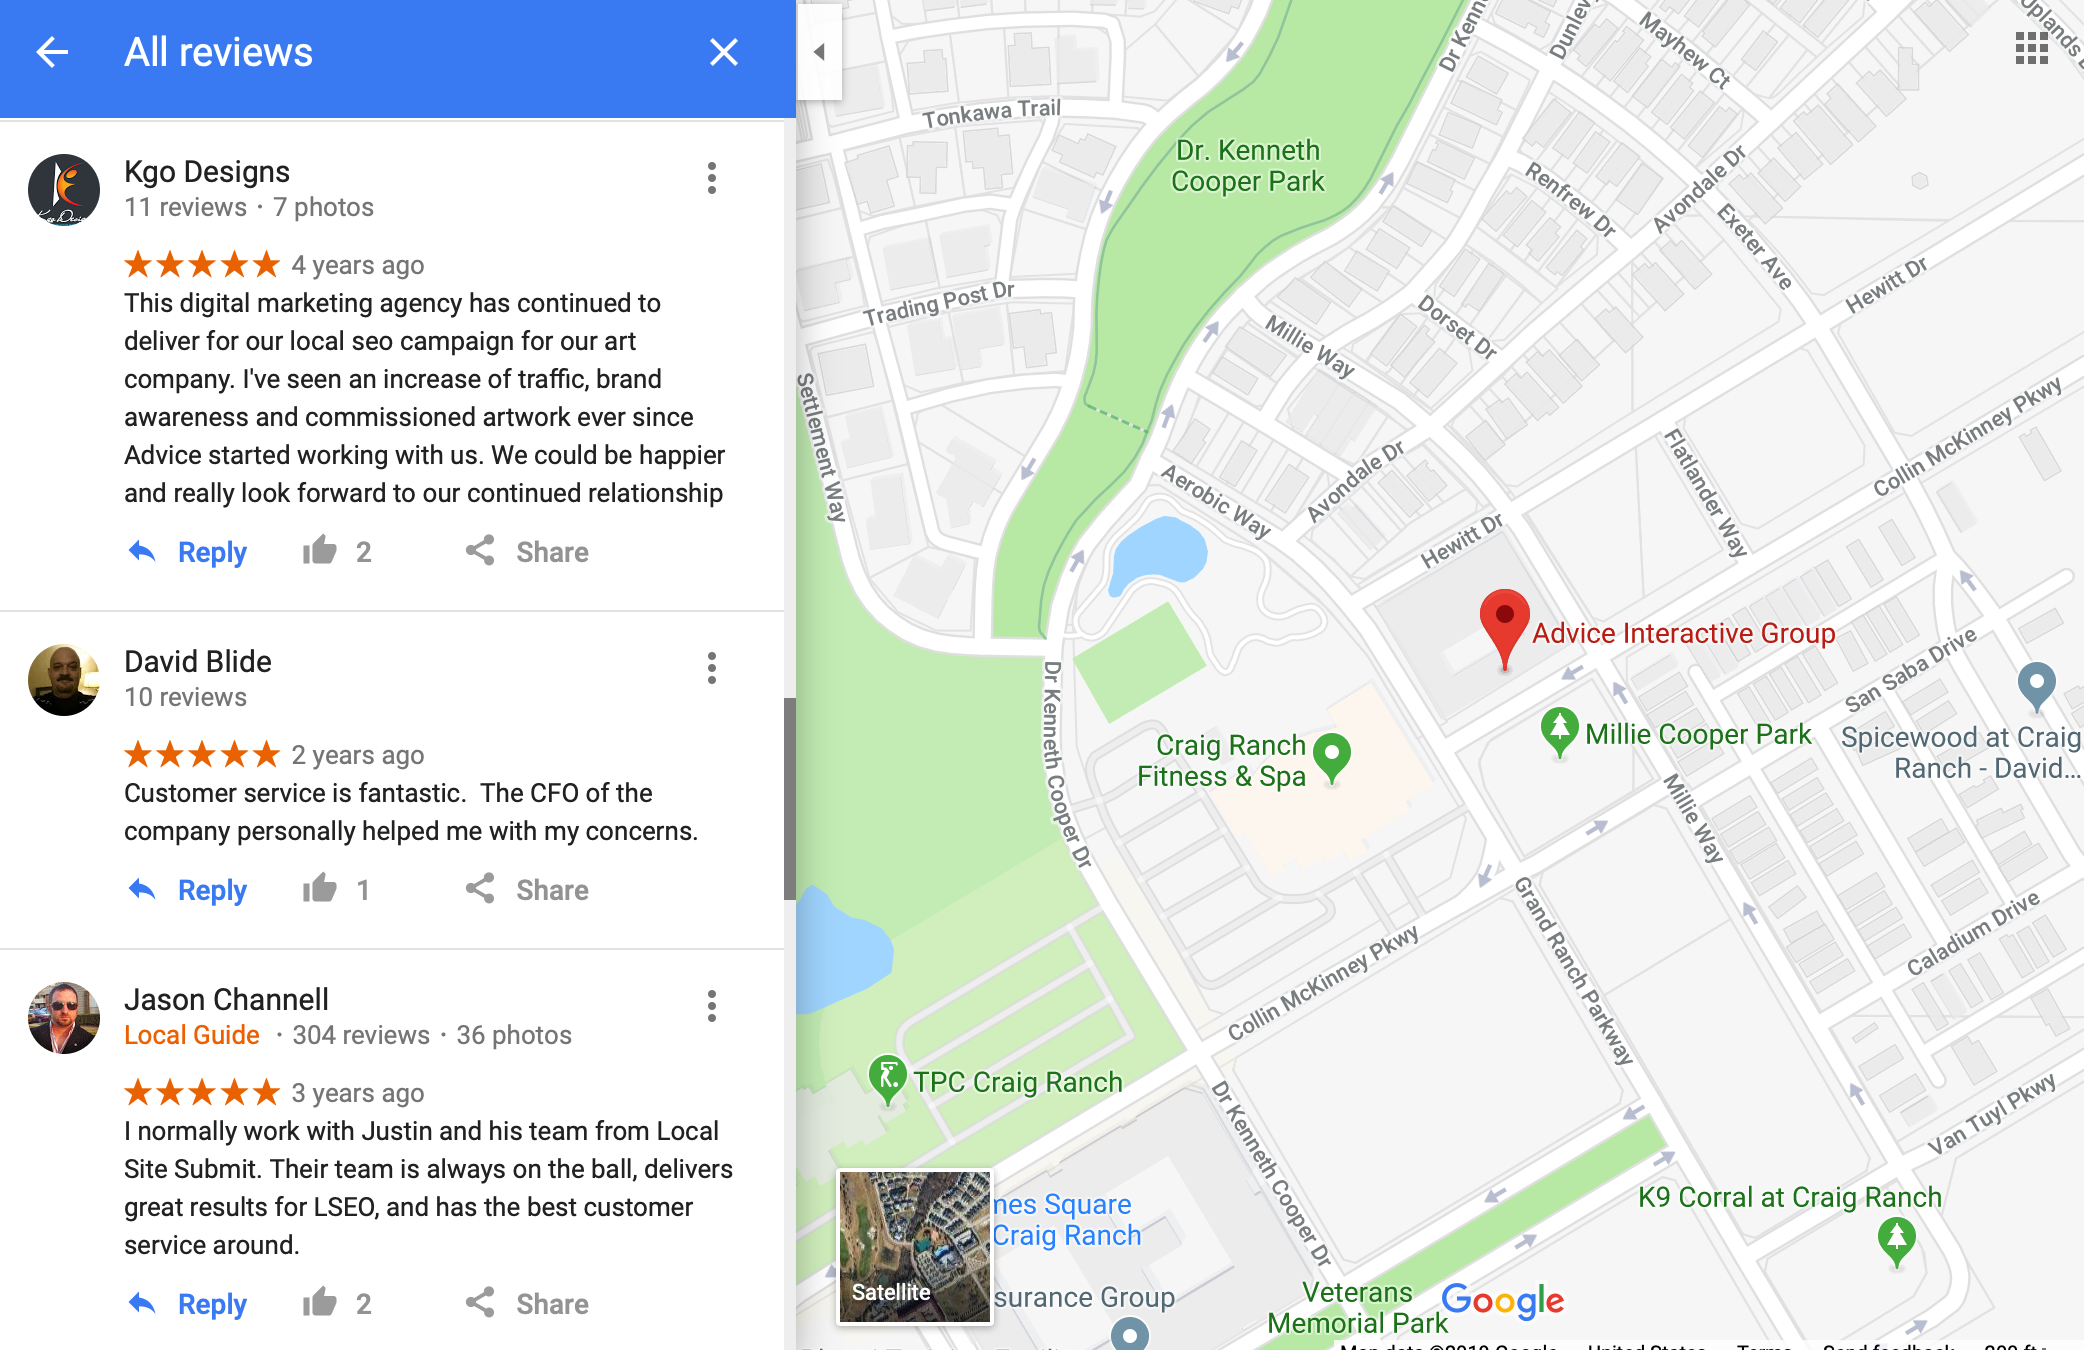 example of how to respond to a review on google maps